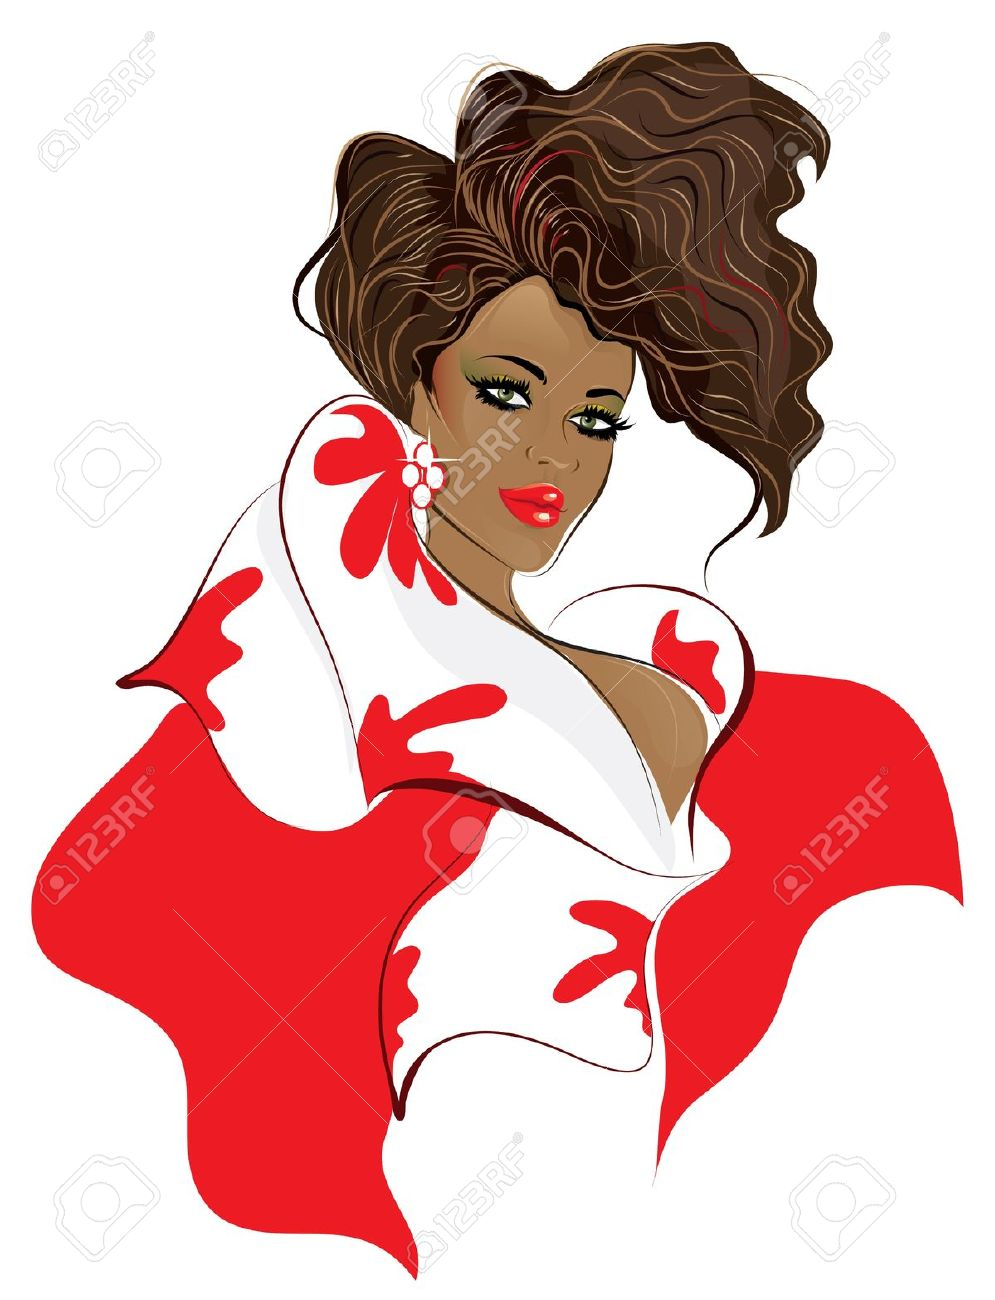 female afro clipart - Clipground